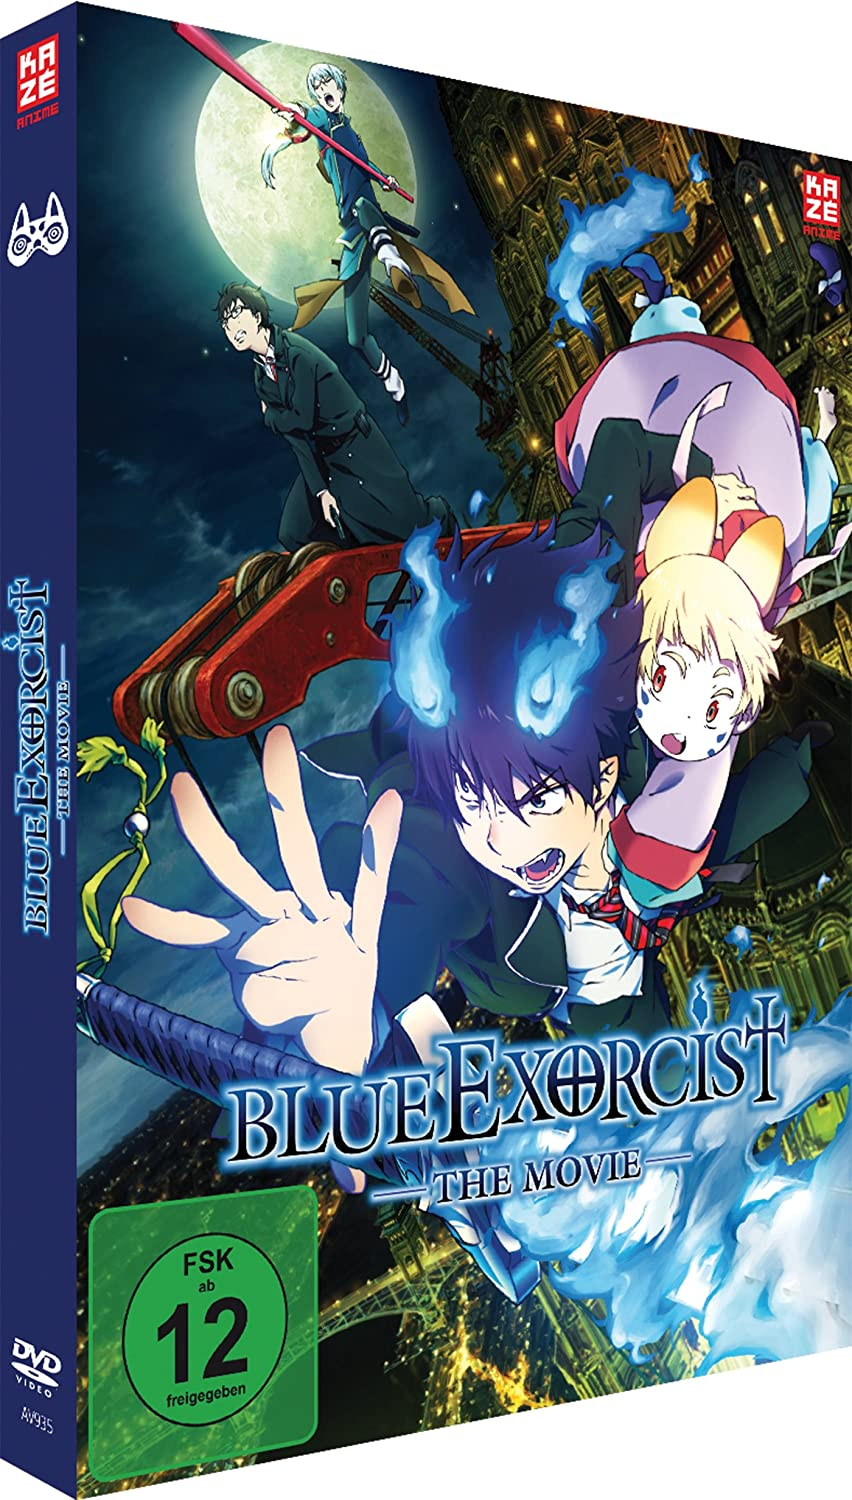 Blue Exorcist - The Movie, DVD